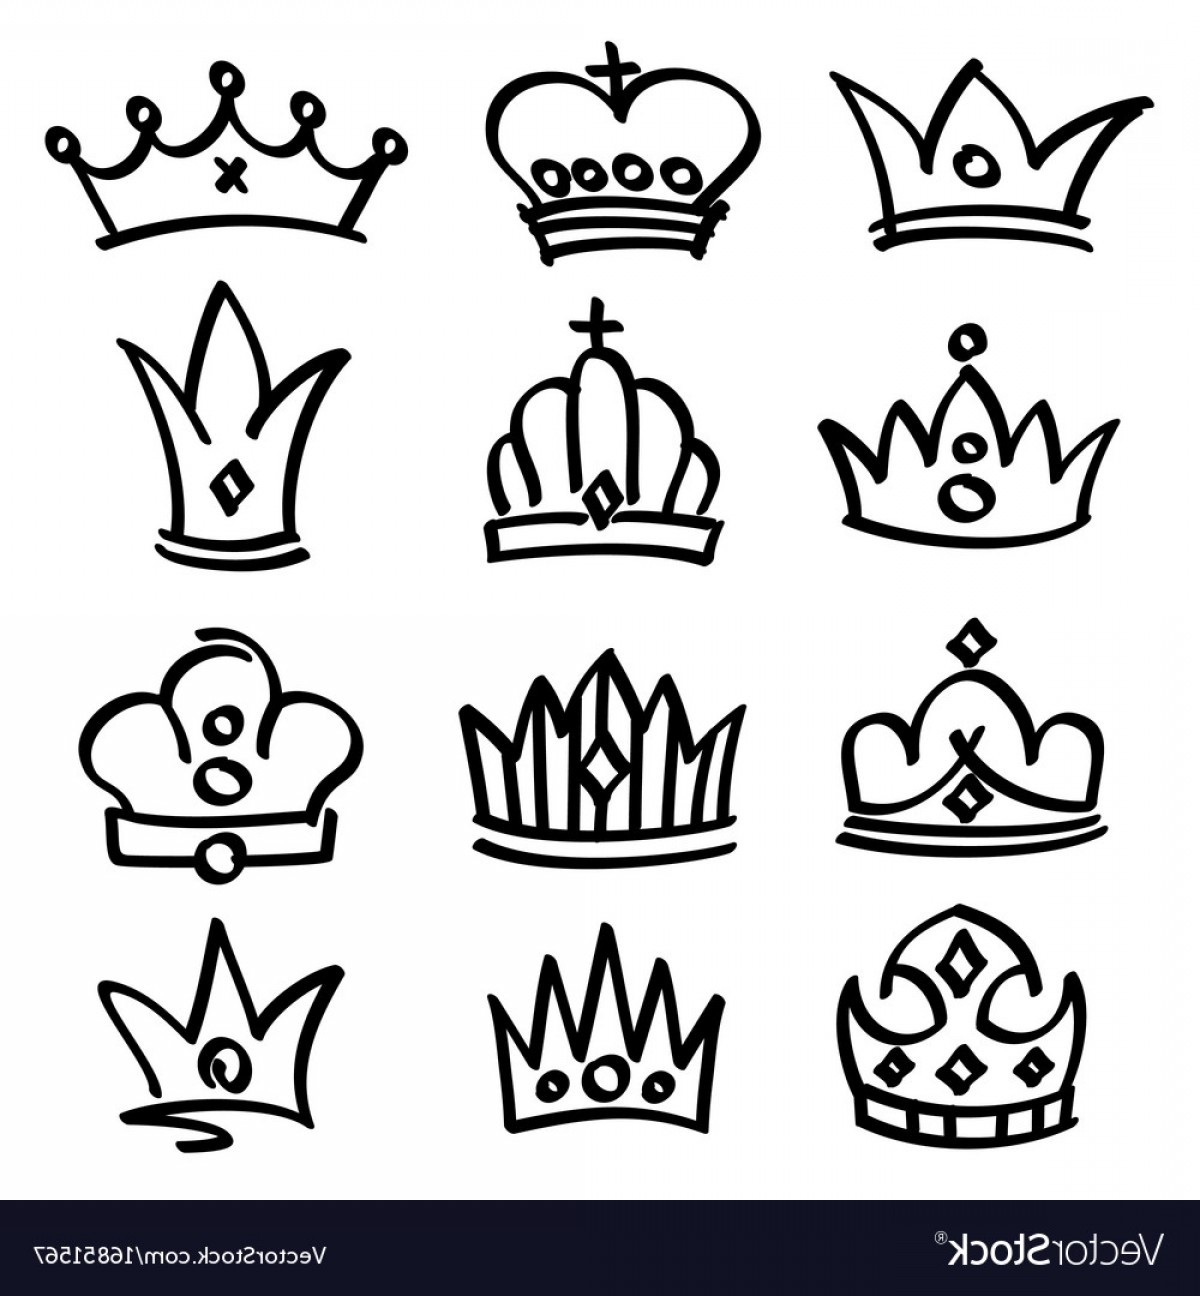 Princess Crown Vector Graphic: Hand Drawn Princess Crowns Sketch Doodle Vector